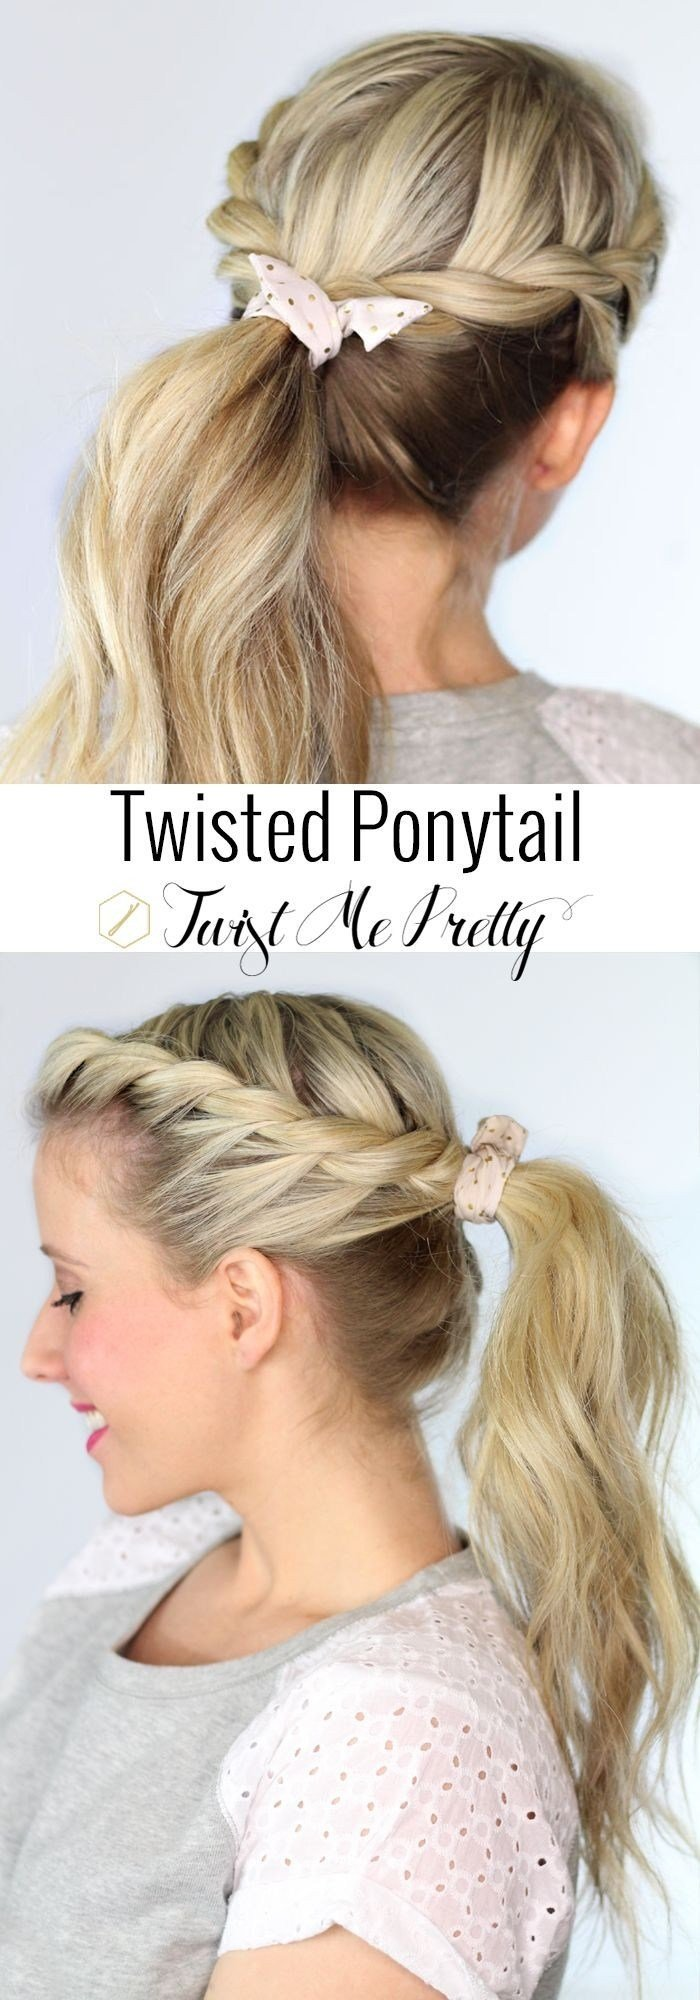 The Best Top 10 Fashionable Ponytail Hairstyles For Summer Styles Pictures